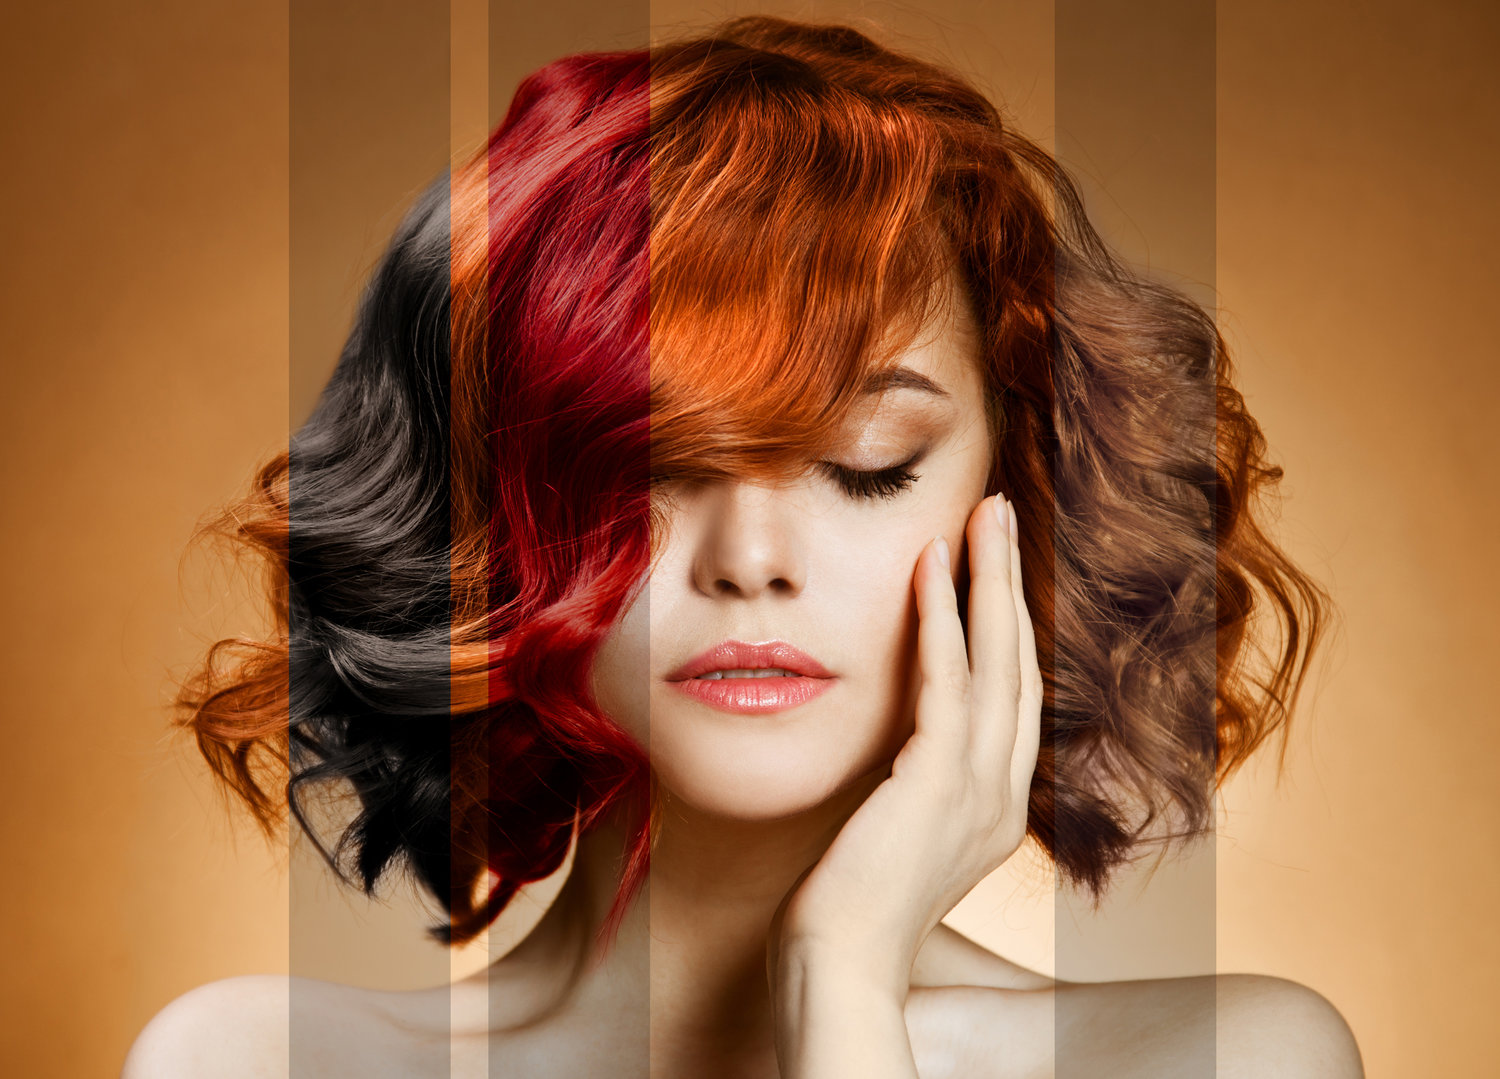 Best Hair Salon in NYC for Coloring - Call 212-222-1346